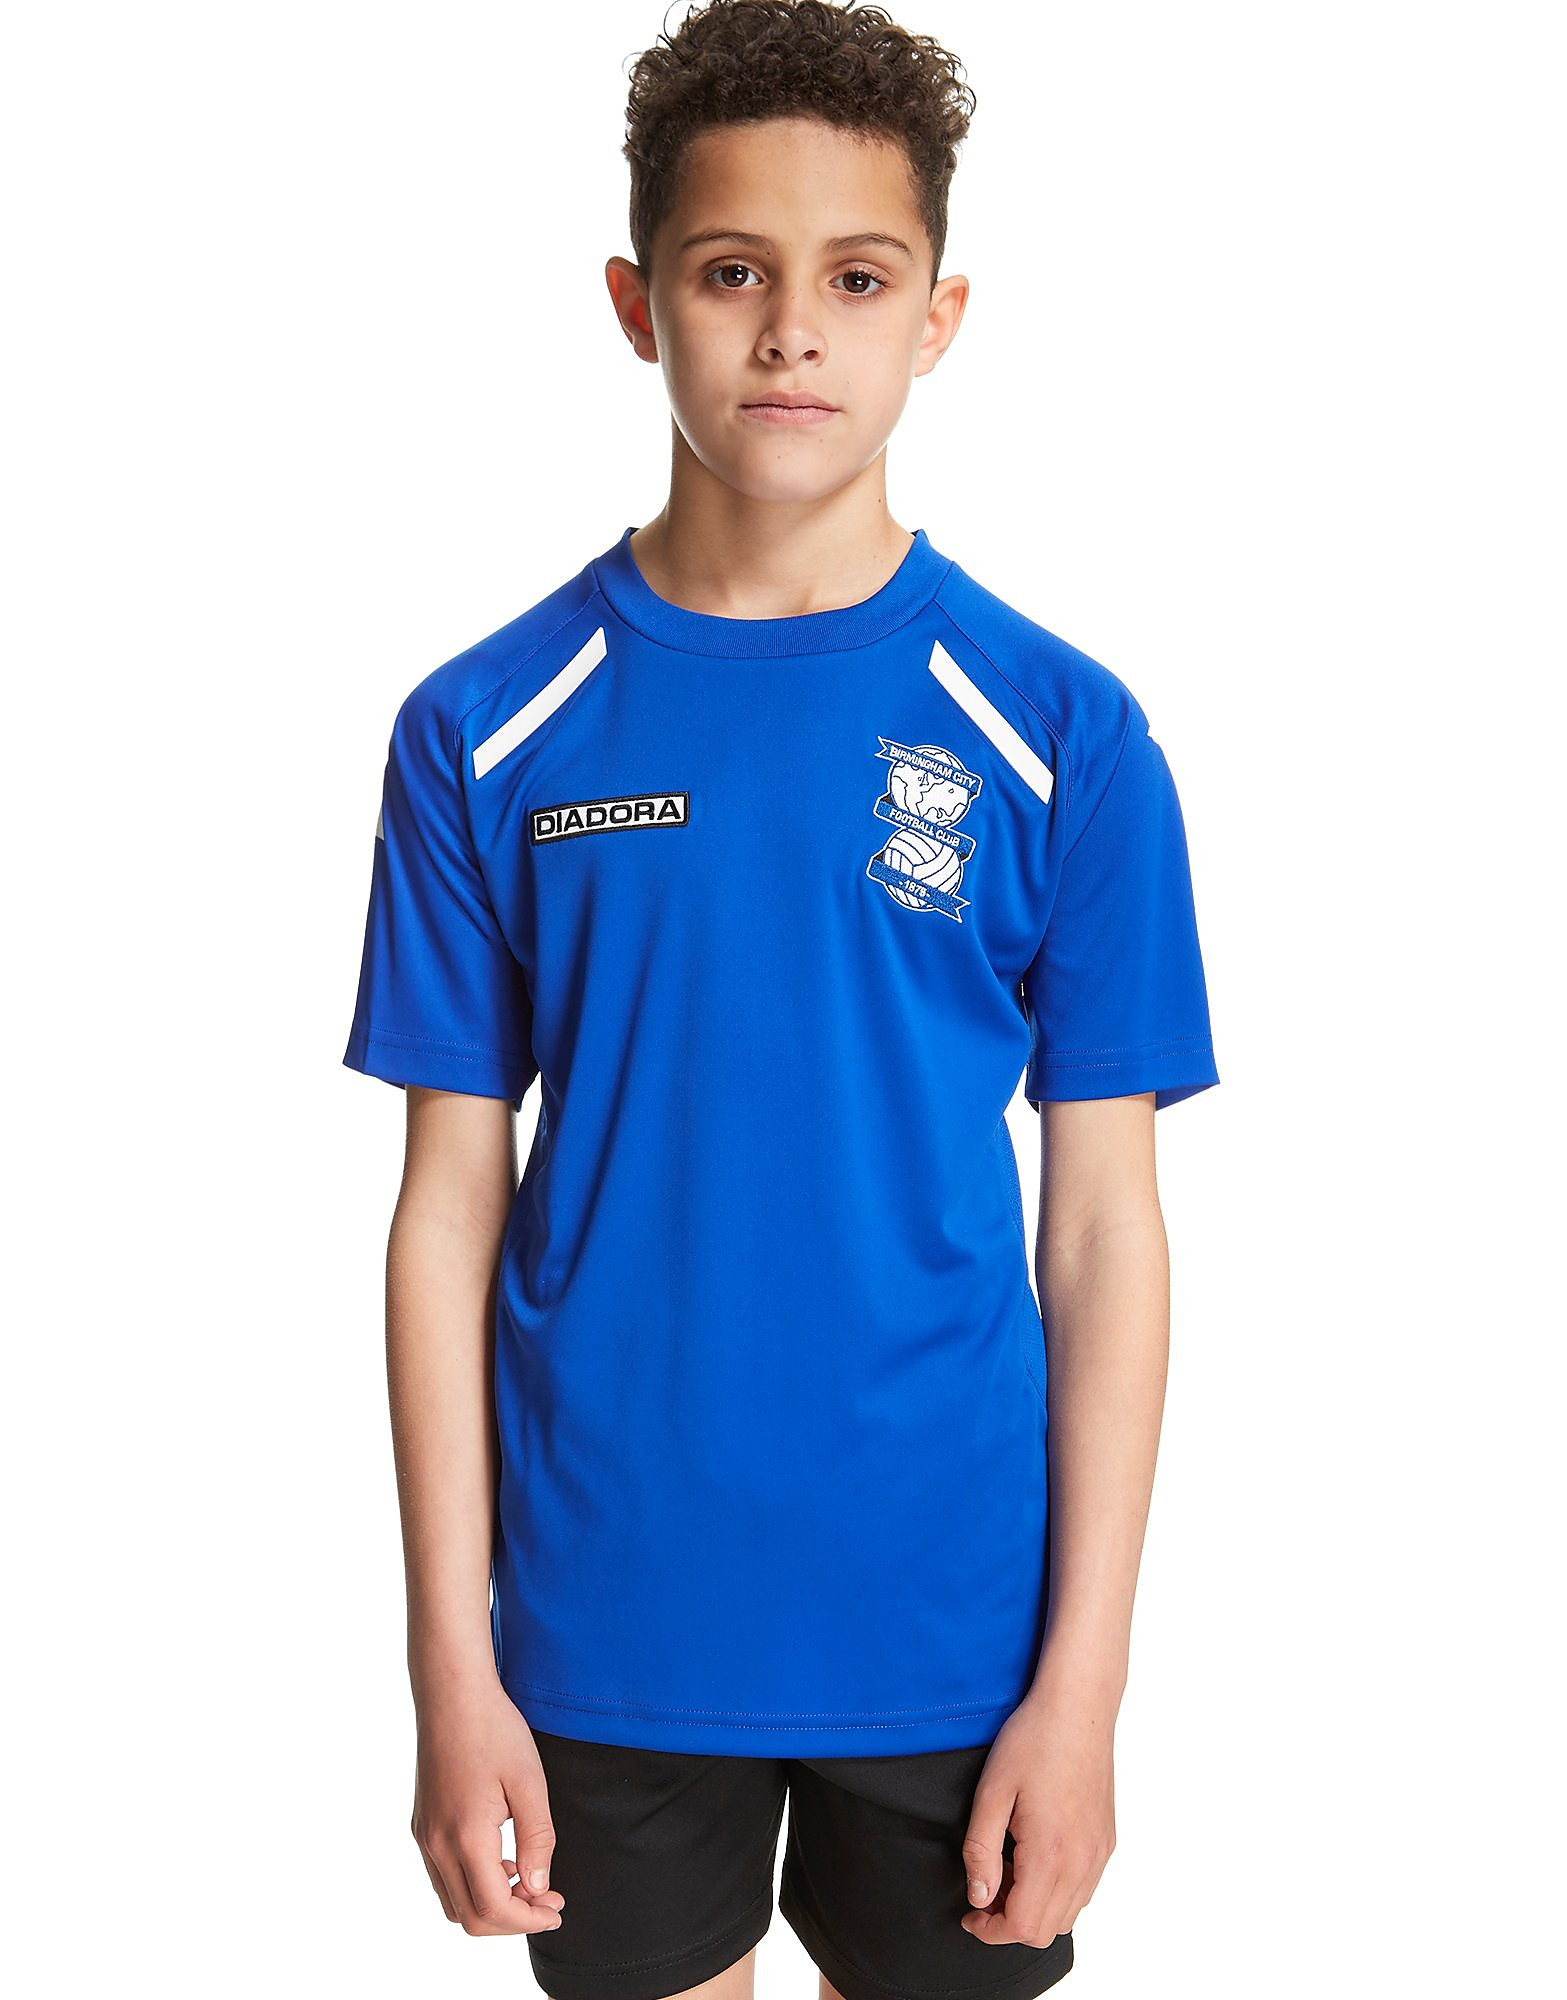 Diadora Birmingham City 2013 T-Shirt Junior